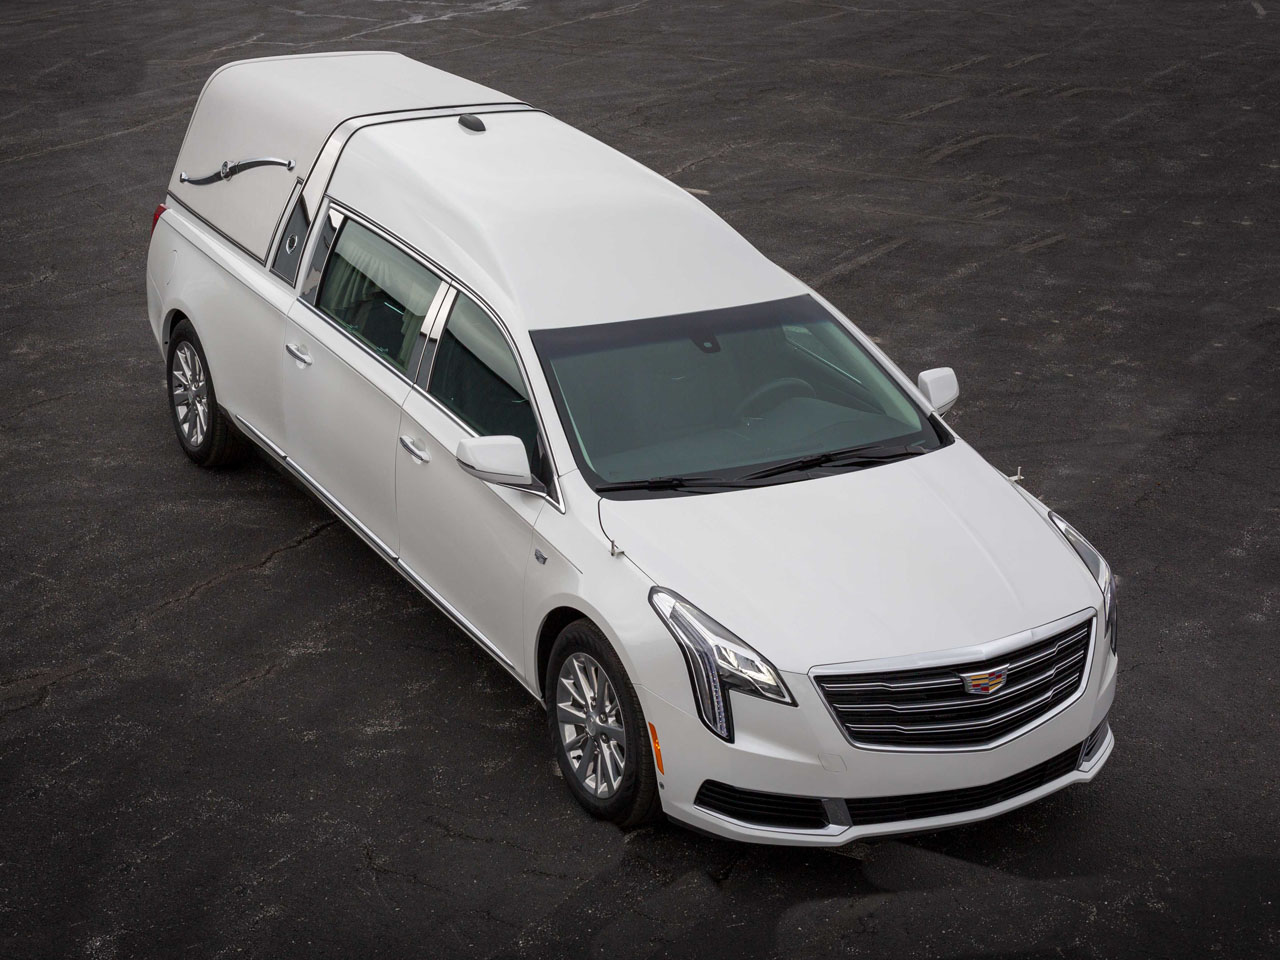 2019 Cadillac Crown Sovereign Hearse 1